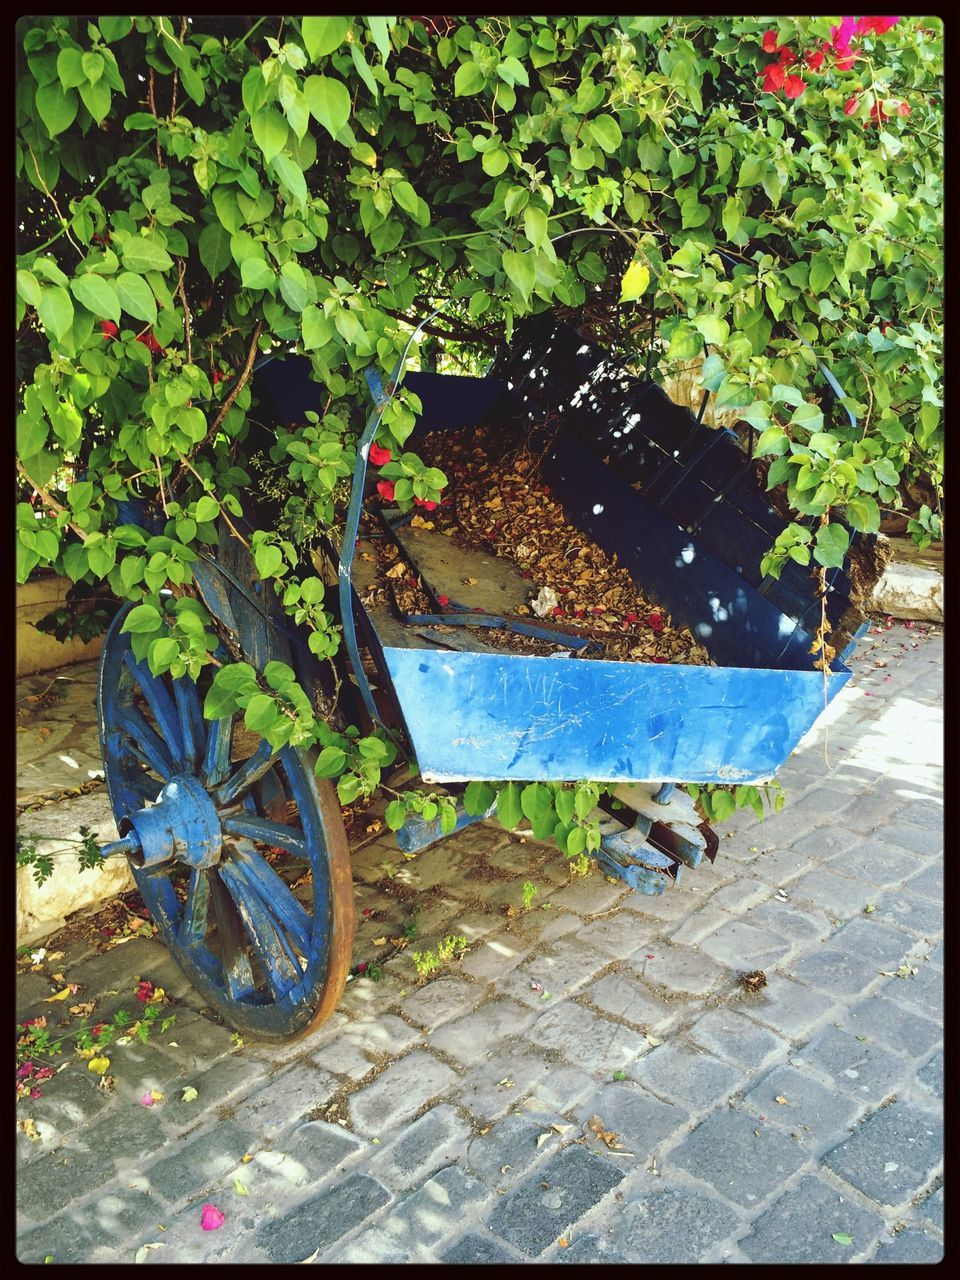 Bush overgrown a wheelbarrow on cobblestones